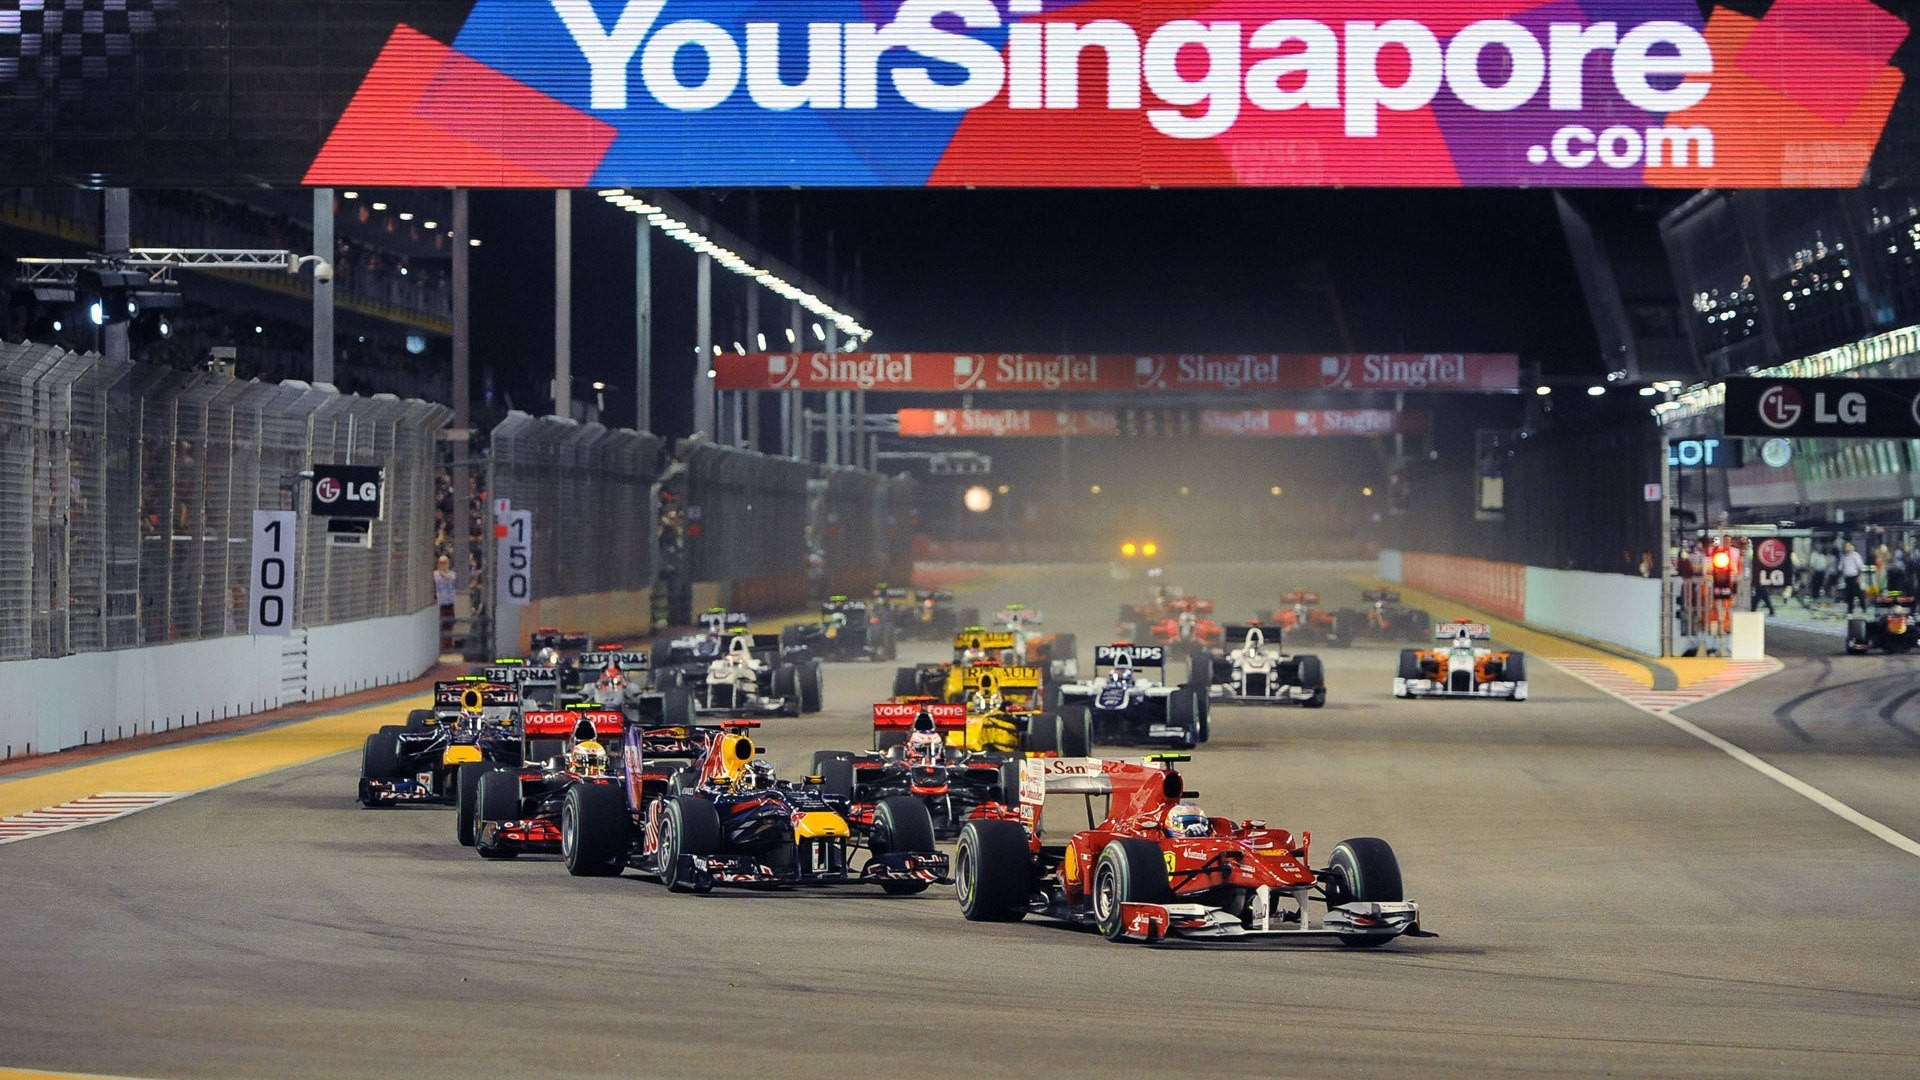 Singapore formula one fernando HD Wallpaper